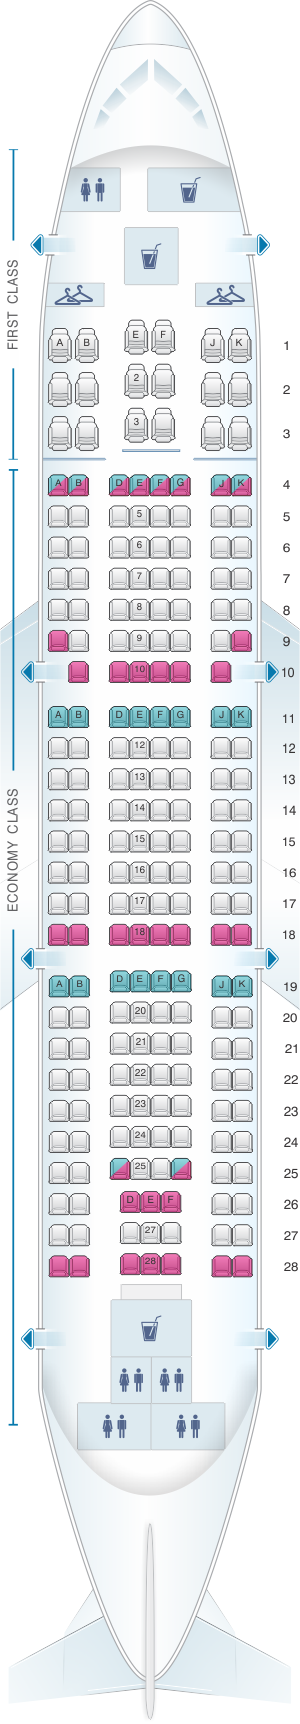 Seat map for Yemenia - Yemen Airways Airbus A310 324 213pax